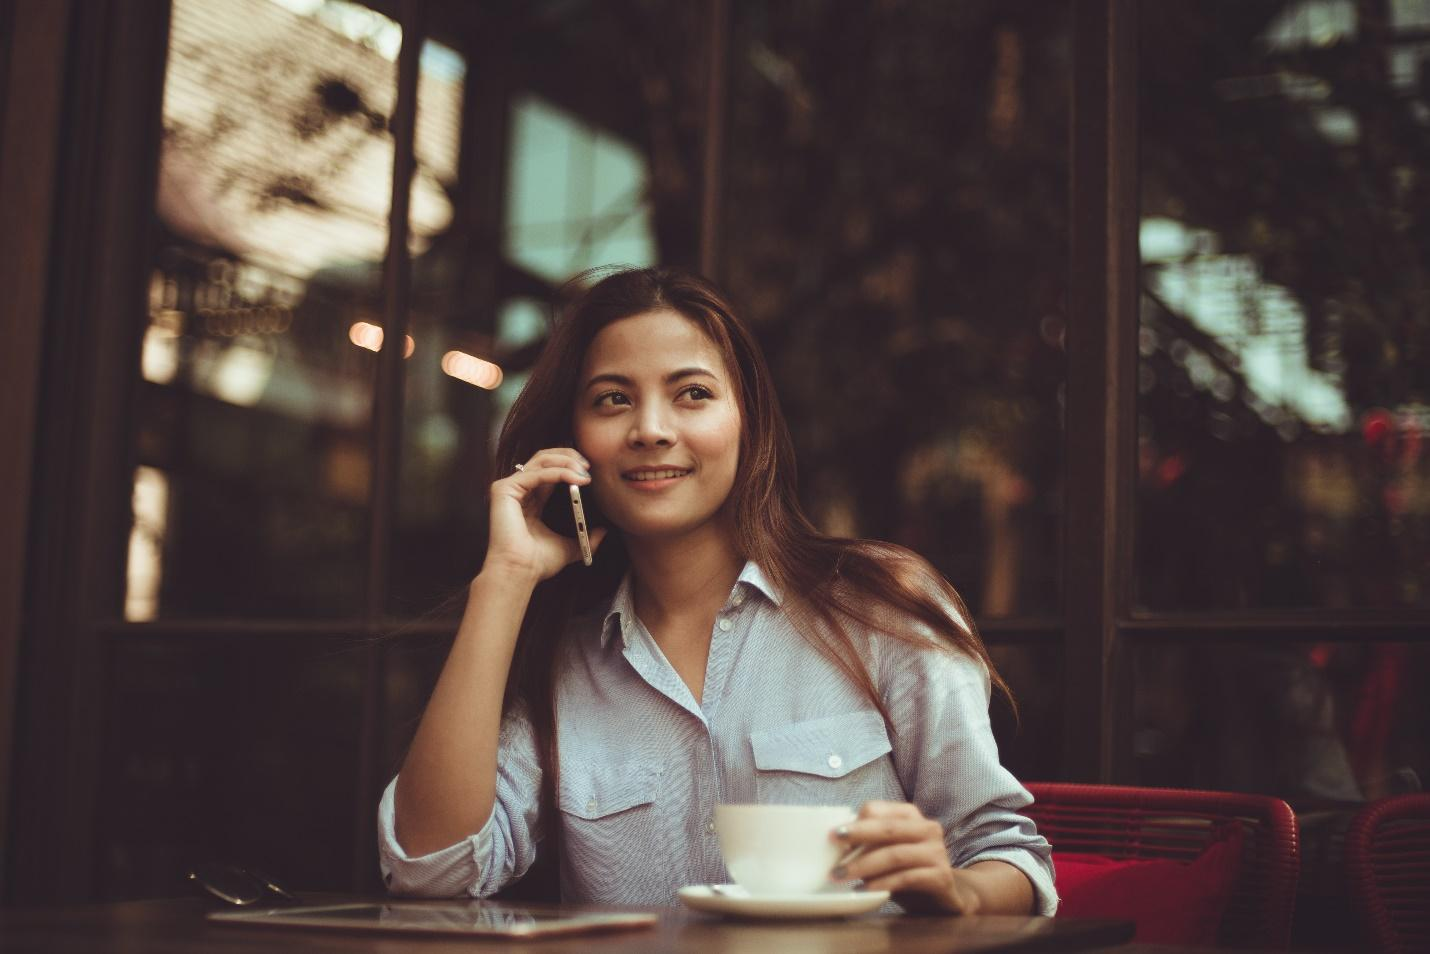 woman takes a business call at a cafe